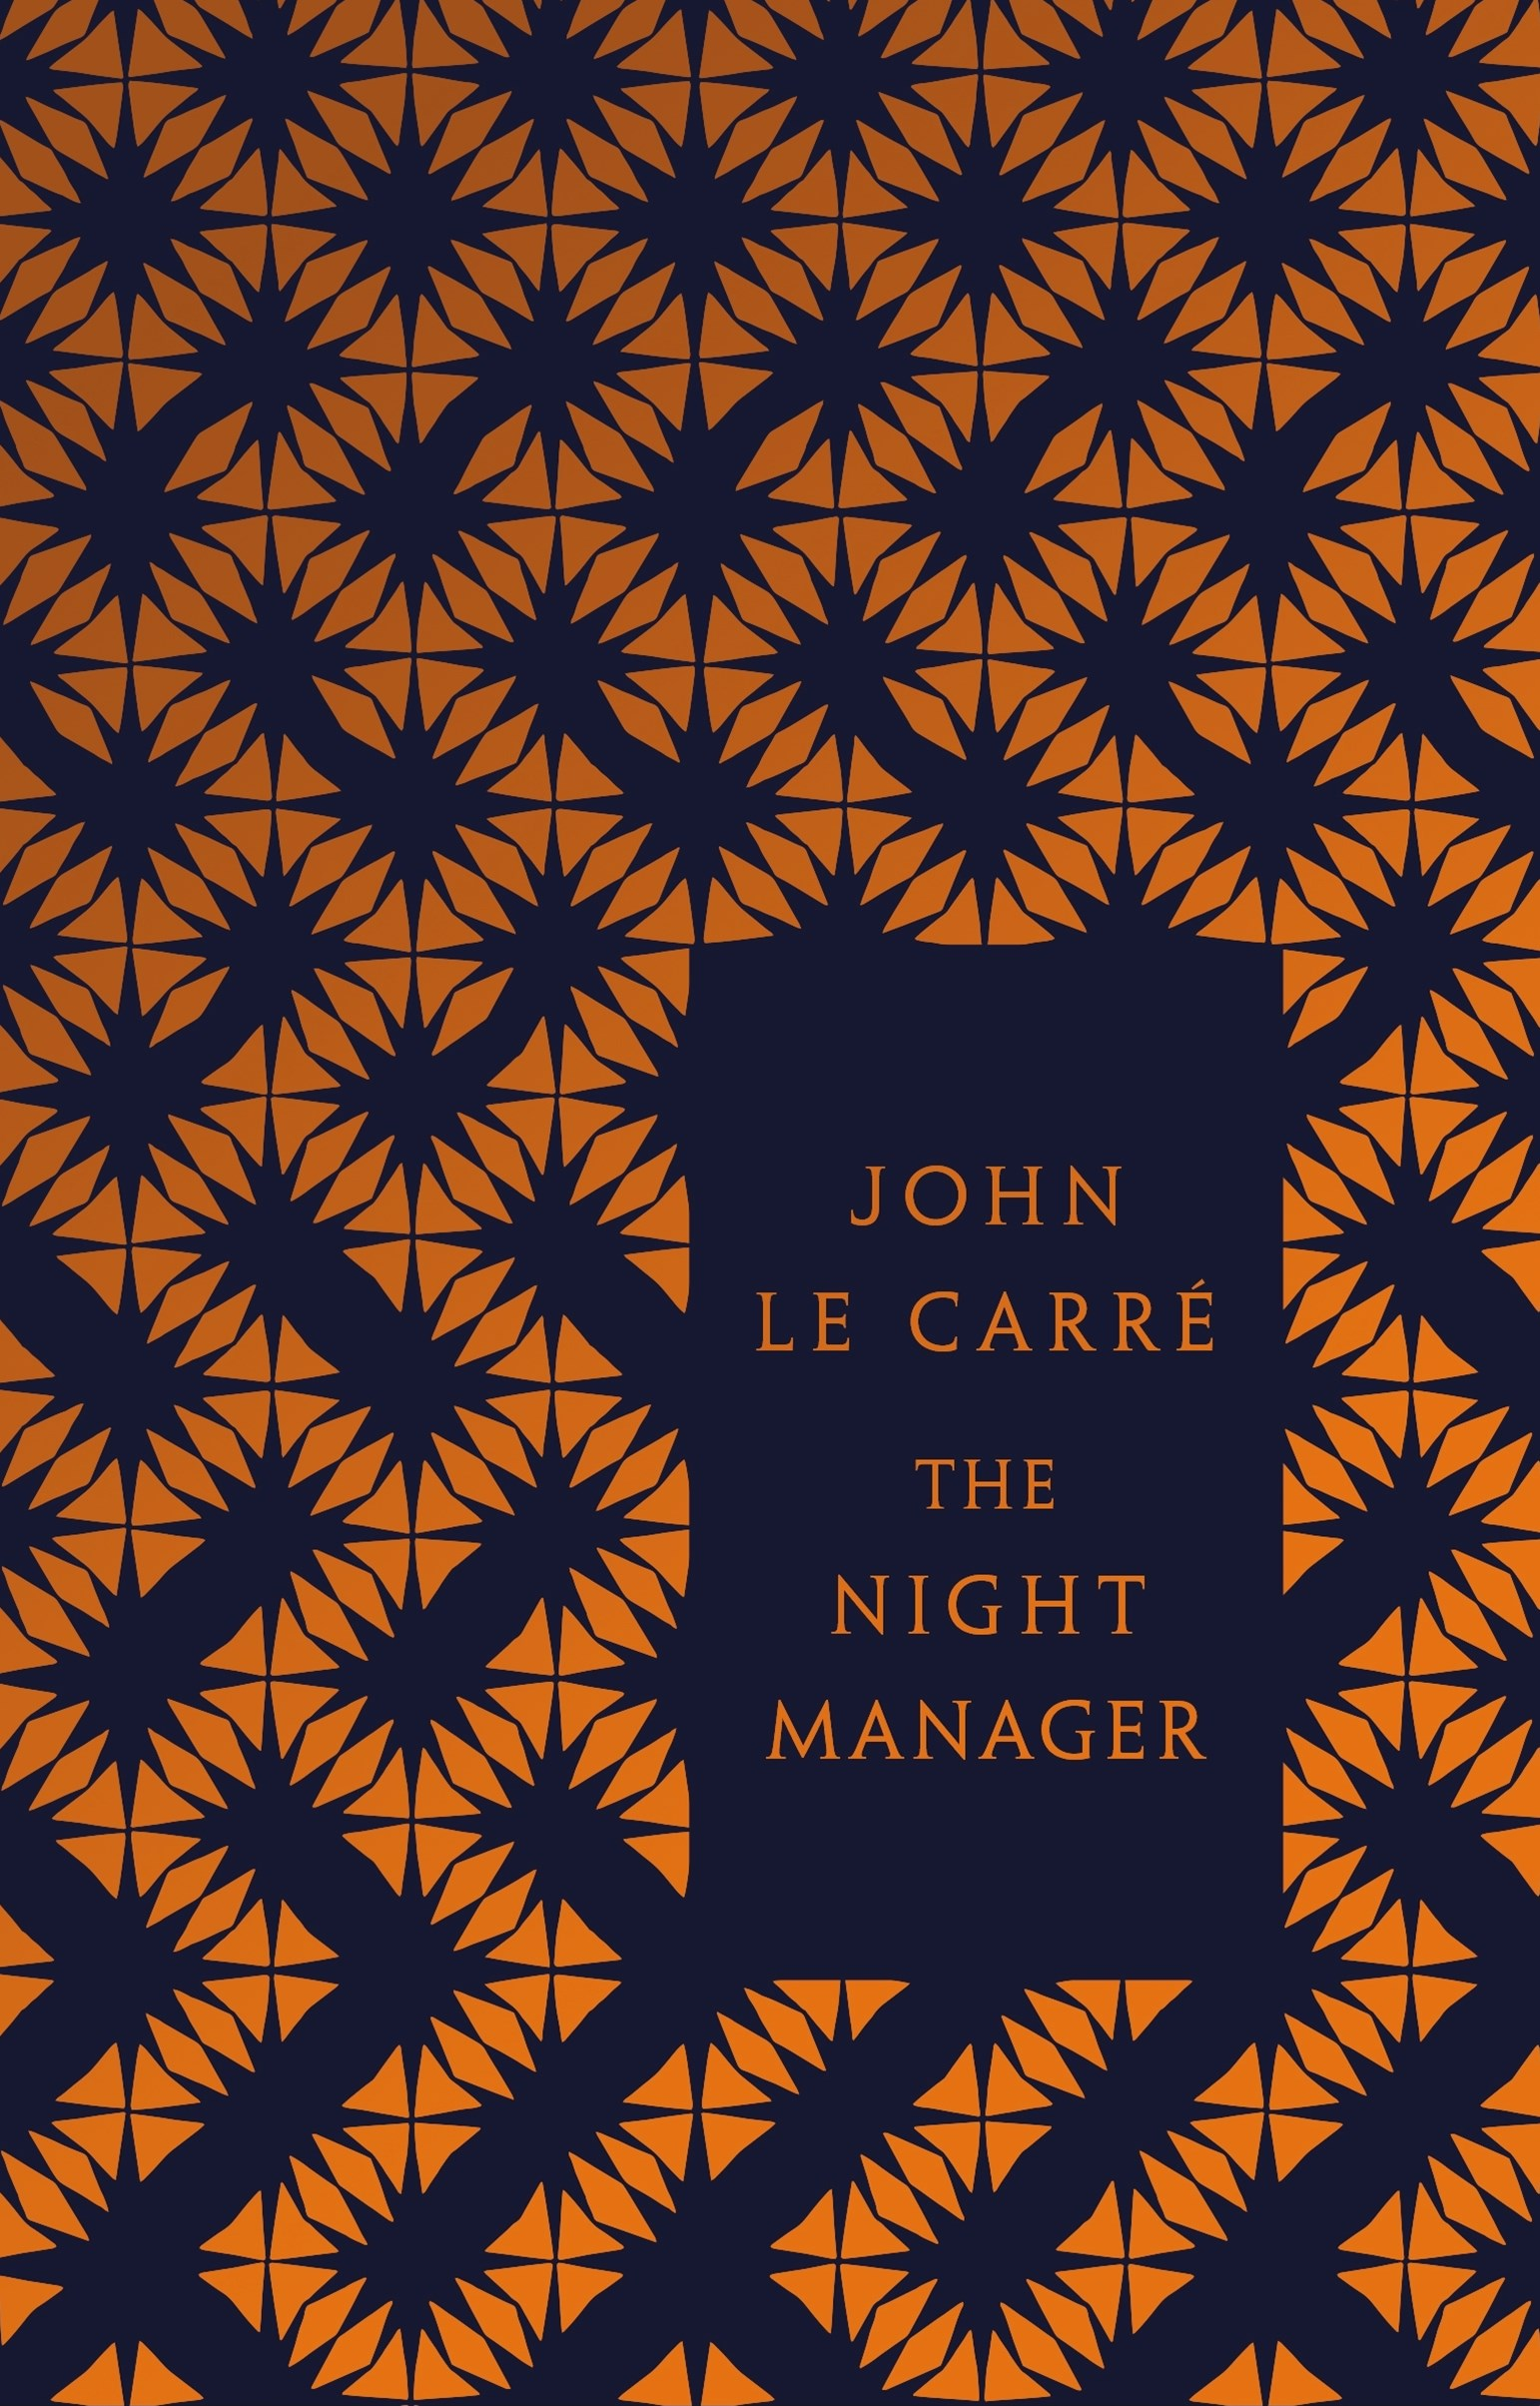 The Night Manager: Design by Coralie Bickford-Smith